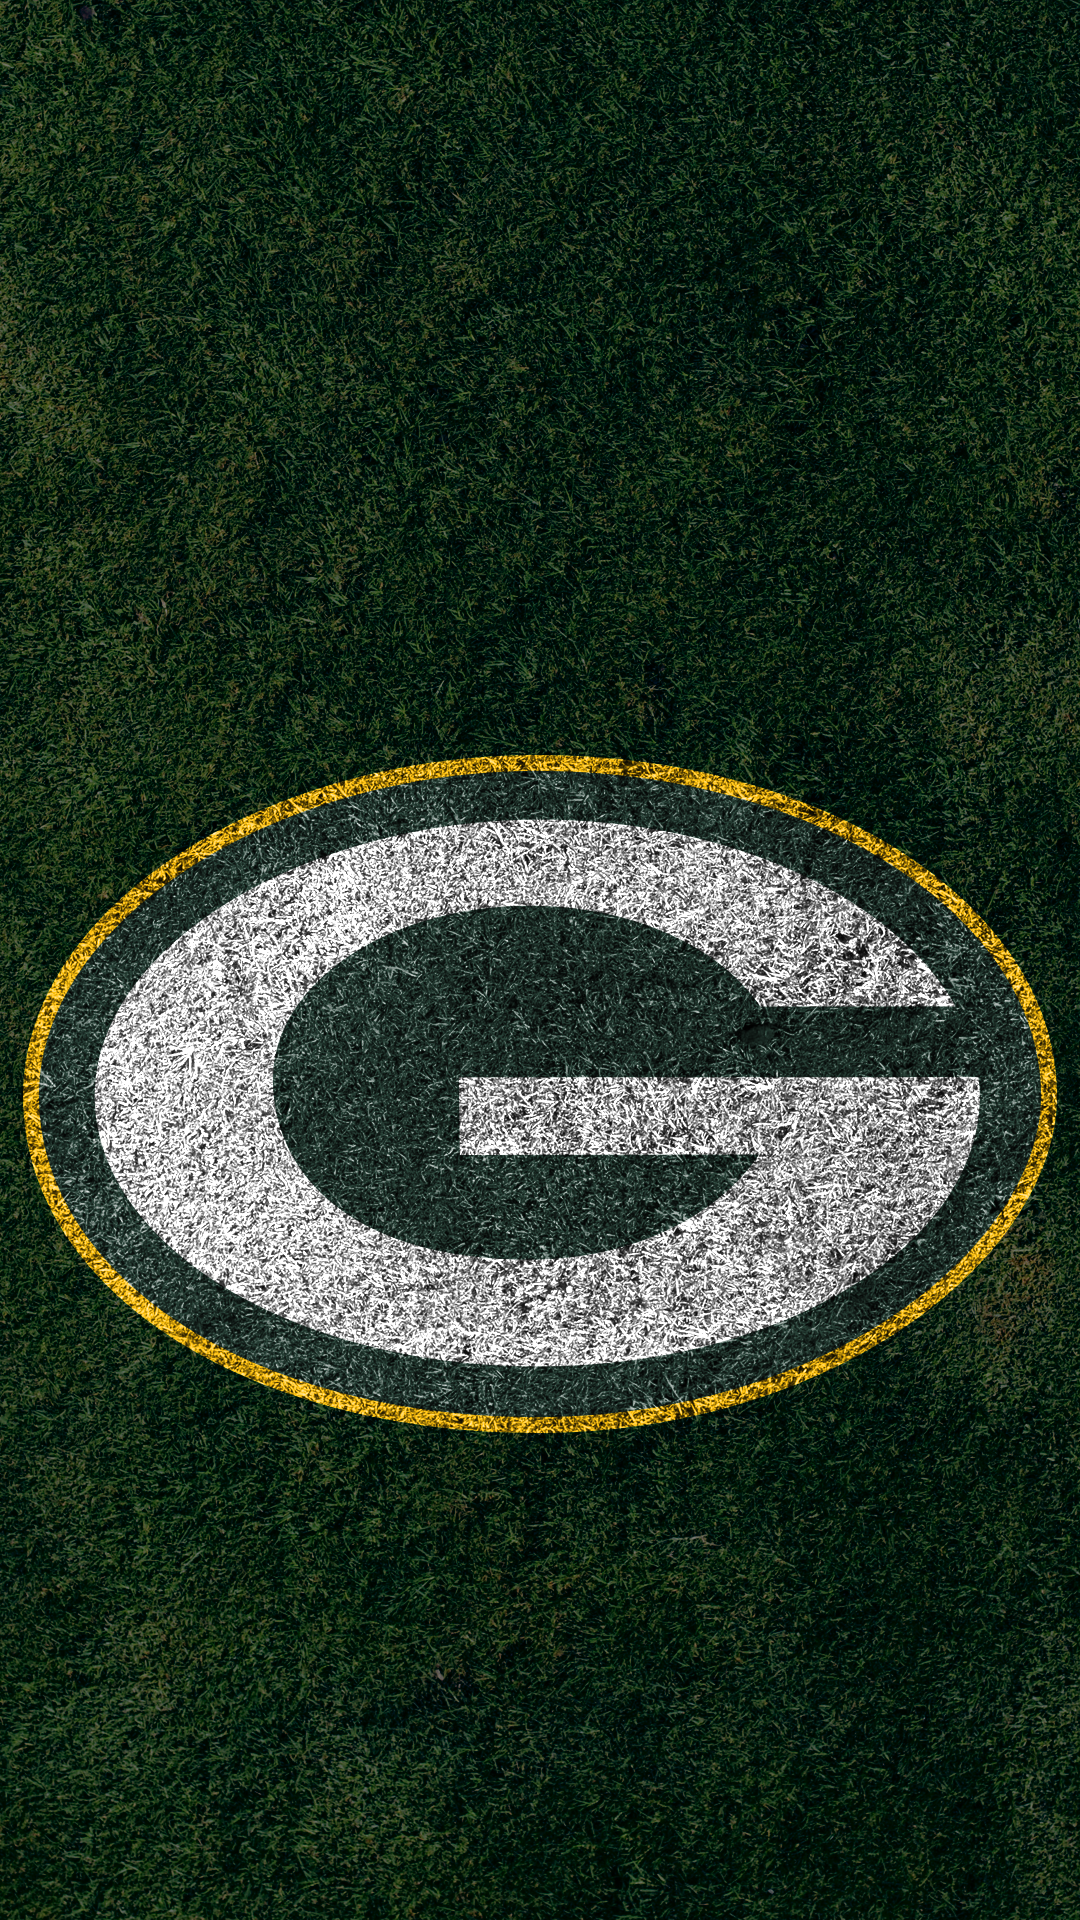 Green Bay Packers Mobile Logo Wallpaper Green Bay Packers Wallpaper Green Bay Packers Logo Green Bay Packers